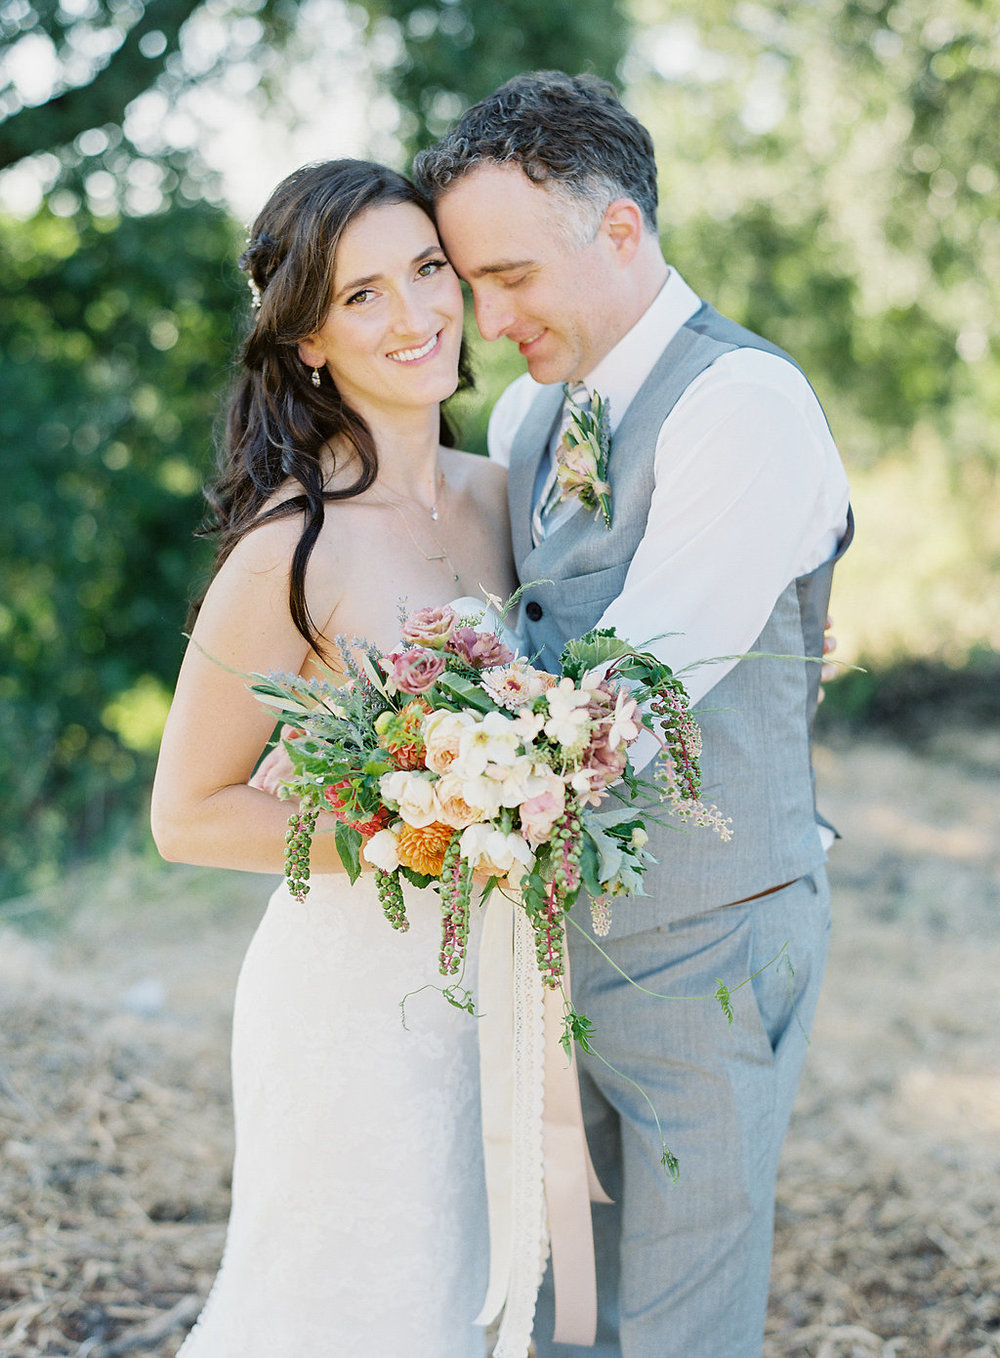 Meghan Mehan Photography - California Wedding Photography - Sacramento Wedding 021.jpg